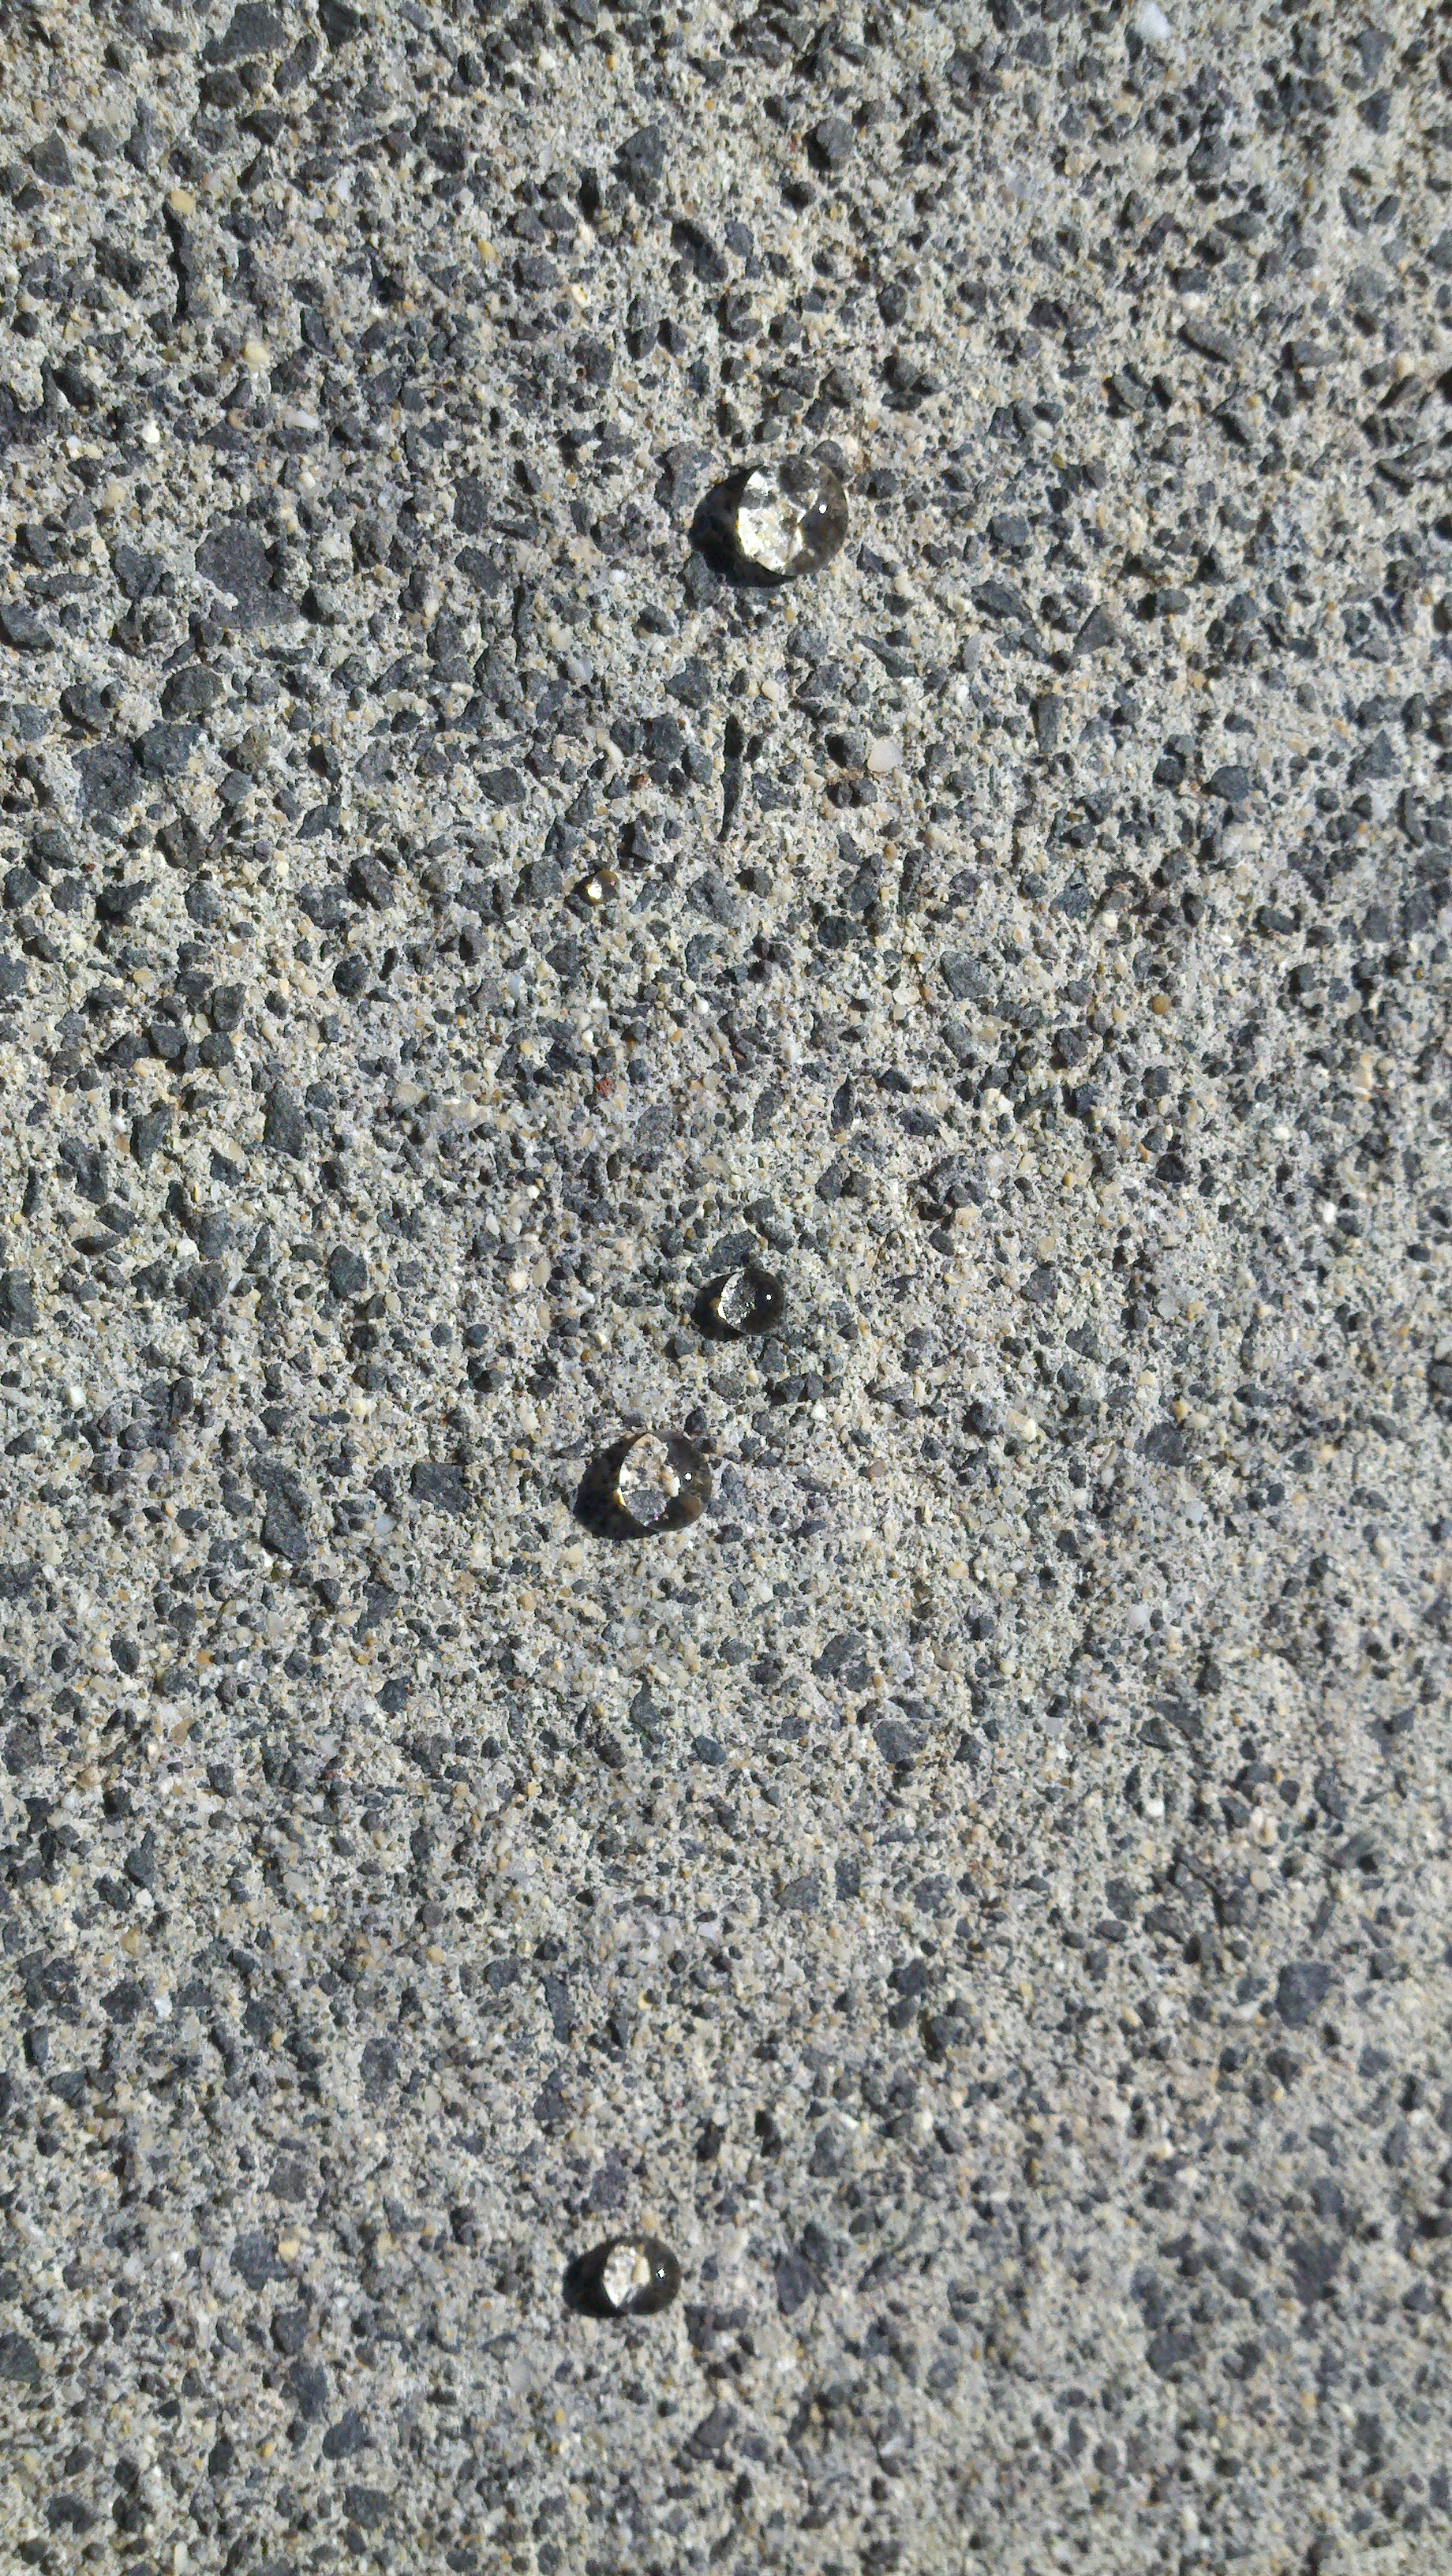 Water Beads on Sealed Concrete